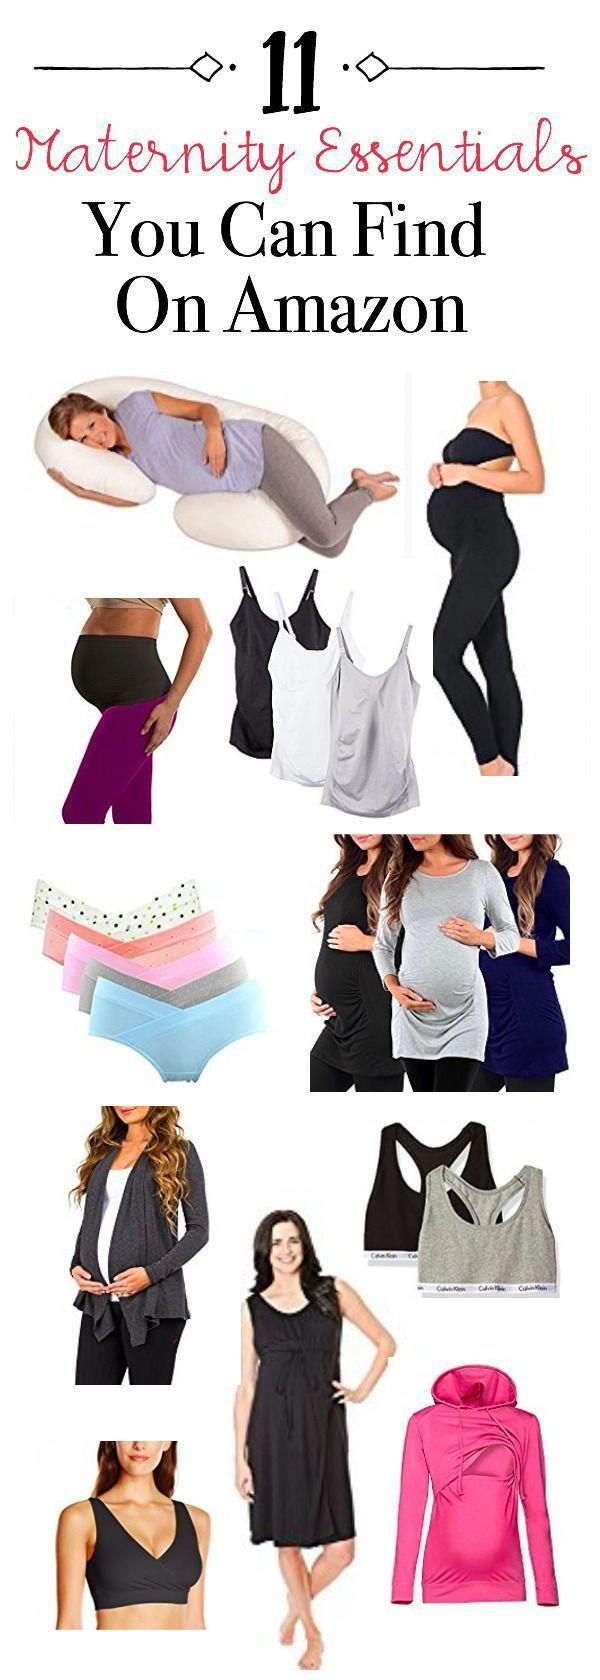 Pregnancy Tips For New Moms #PregnancyClothes – Maternity